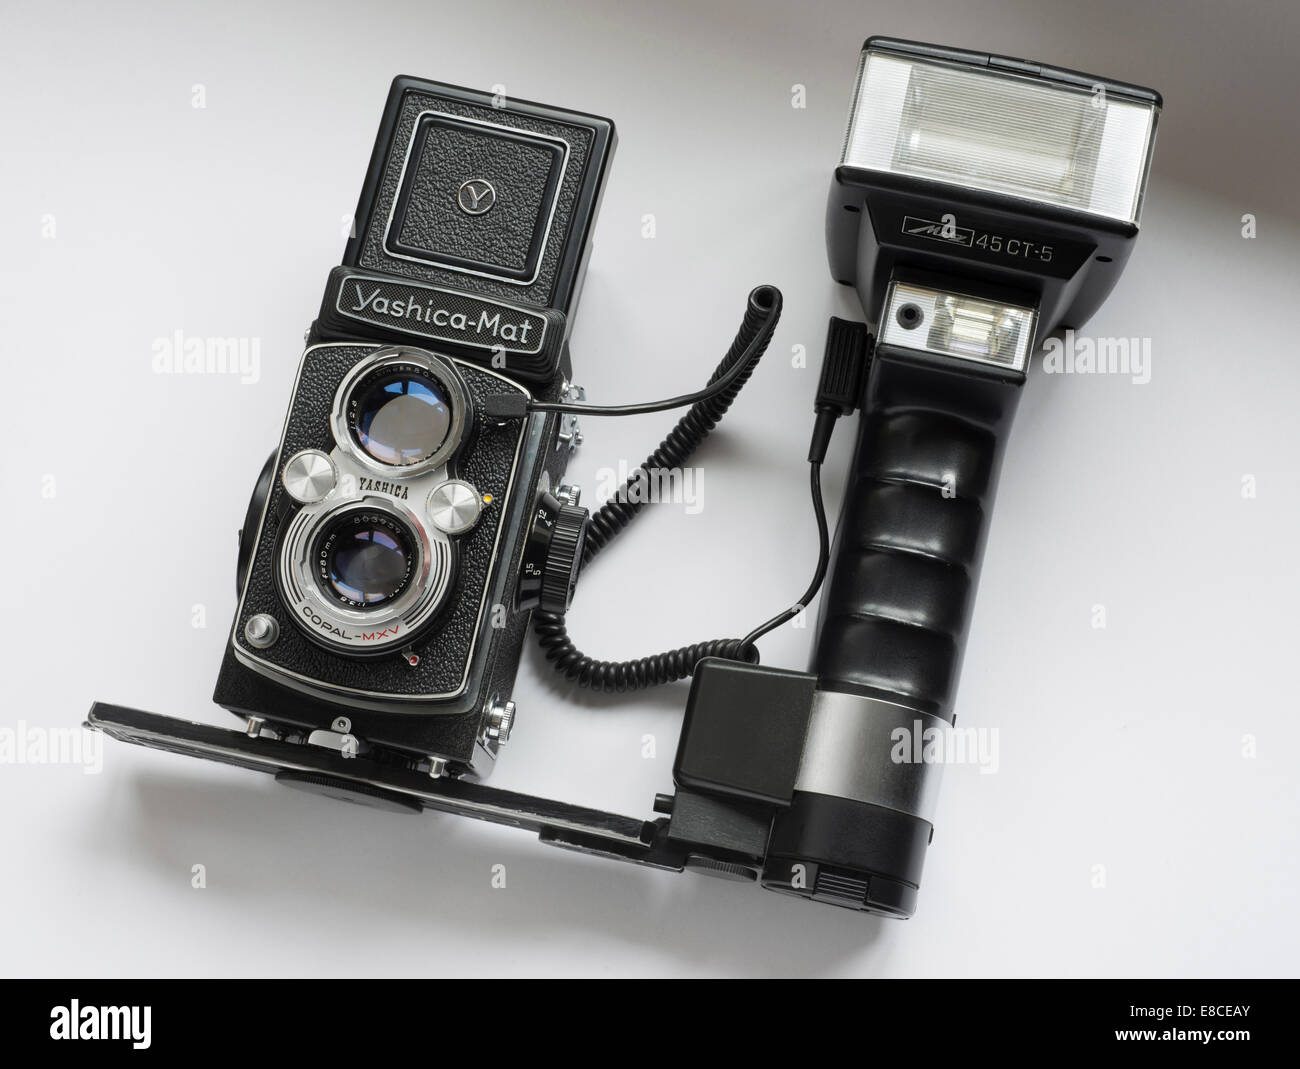 Yashica-Mat medium format vintage camera fitted with a Metz hammerhead flashgun. - Stock Image